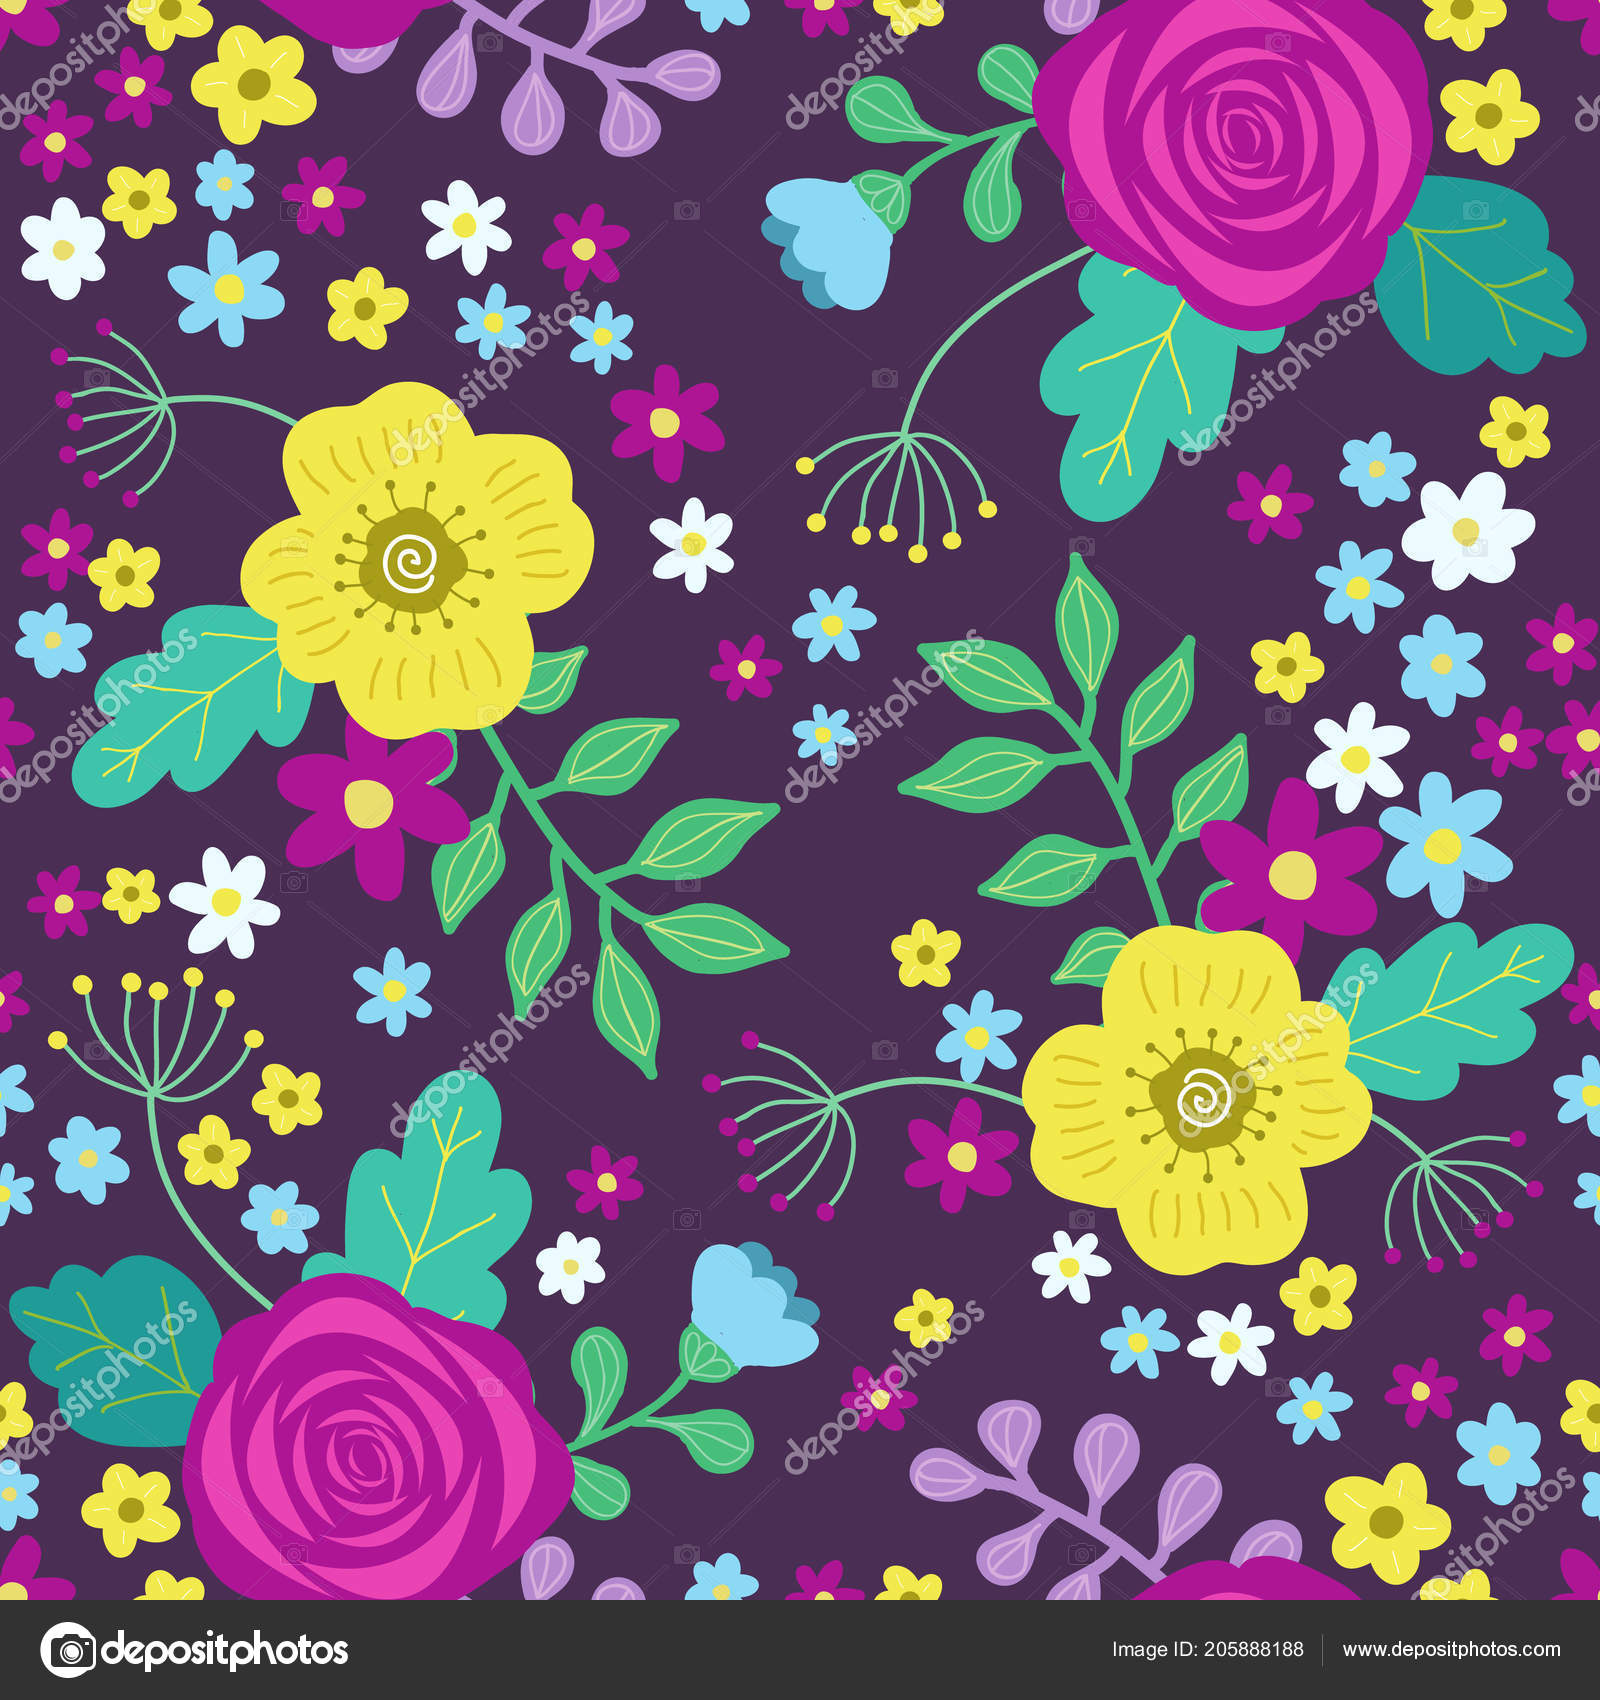 Floral Colorful Seamless Pattern Purple Yellow Roses Blue Flowers